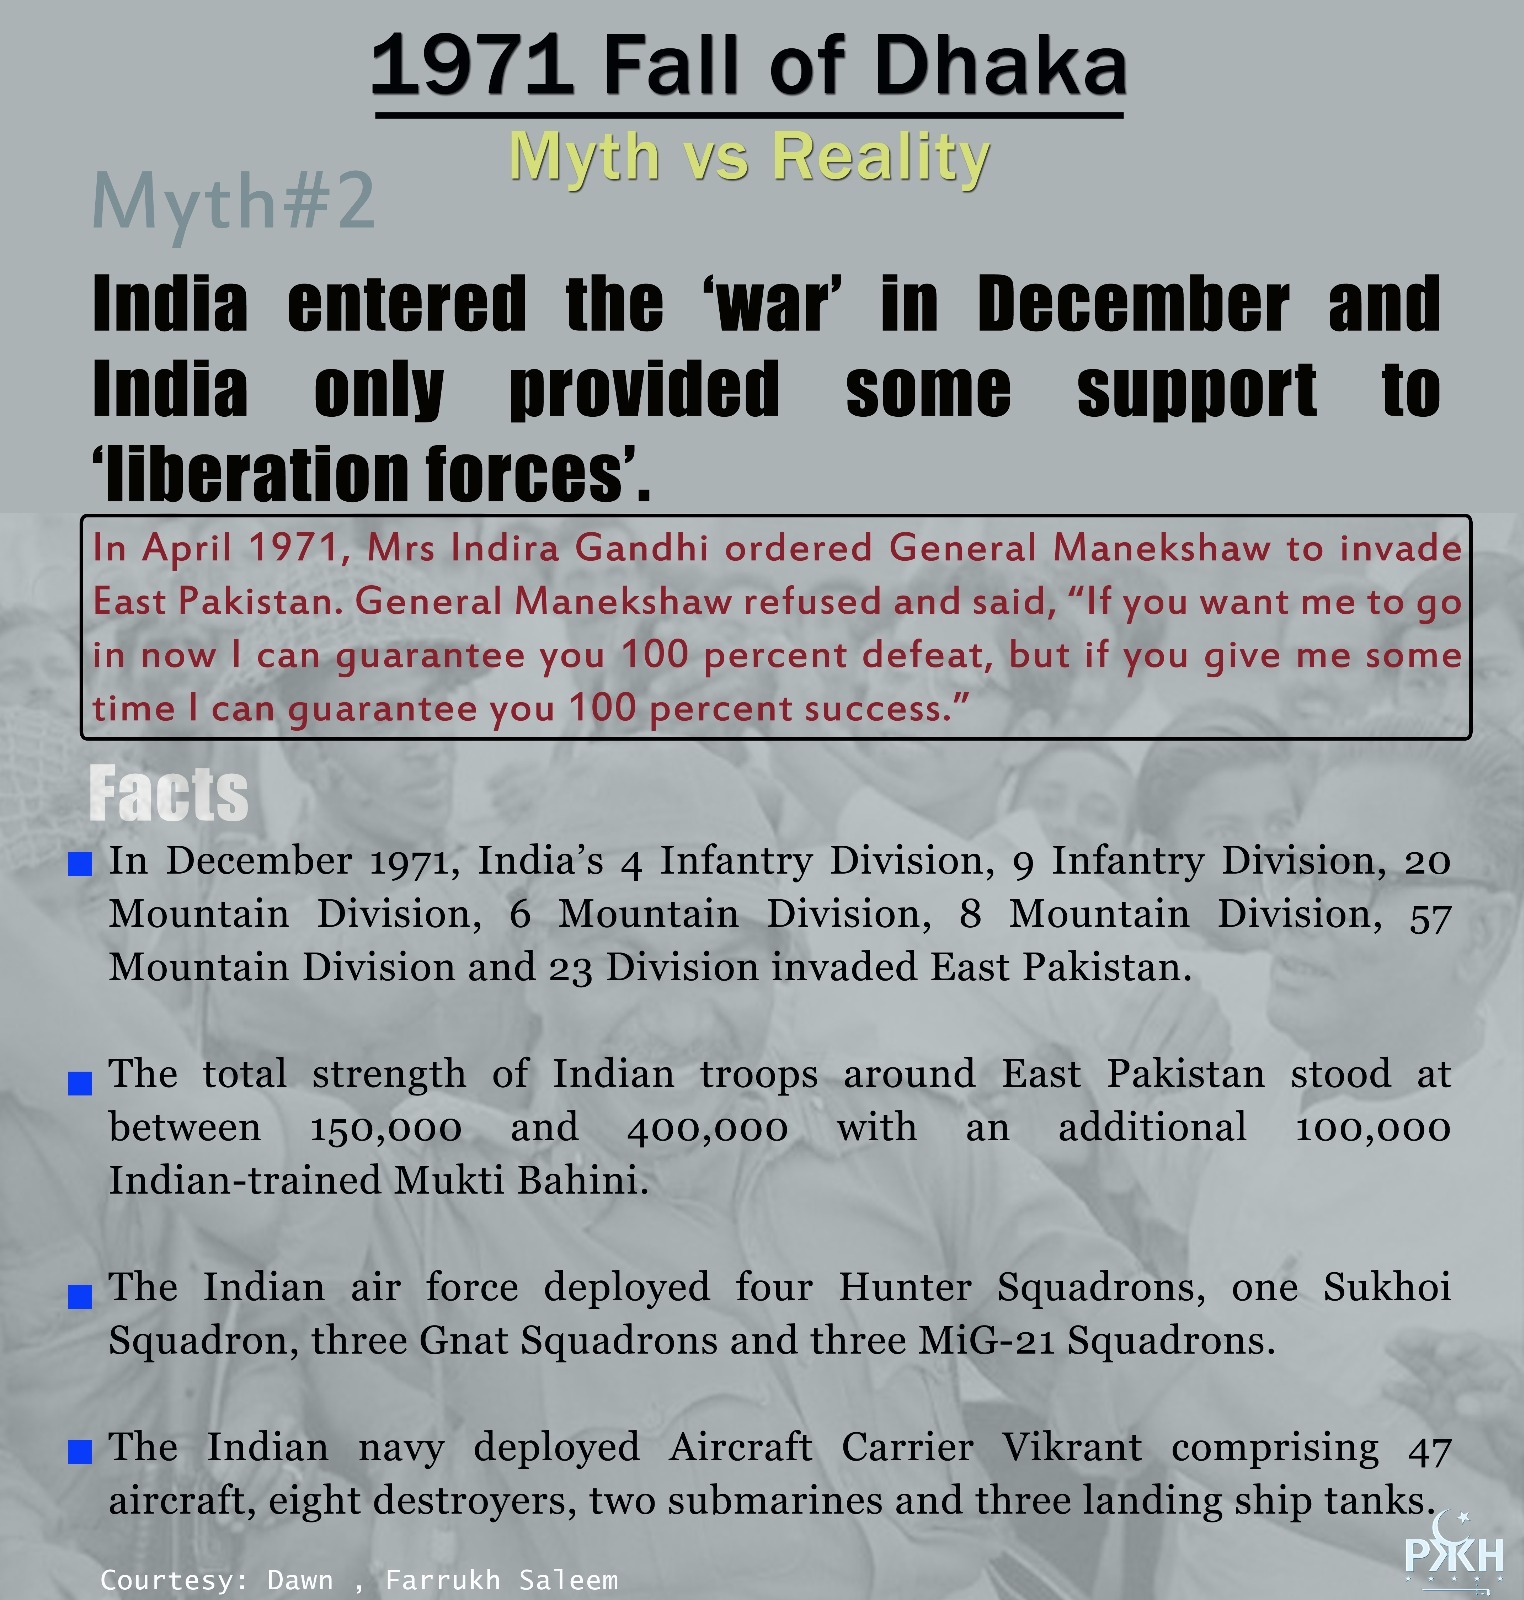 1971 fall of dhaka, myth vs reality. myth2